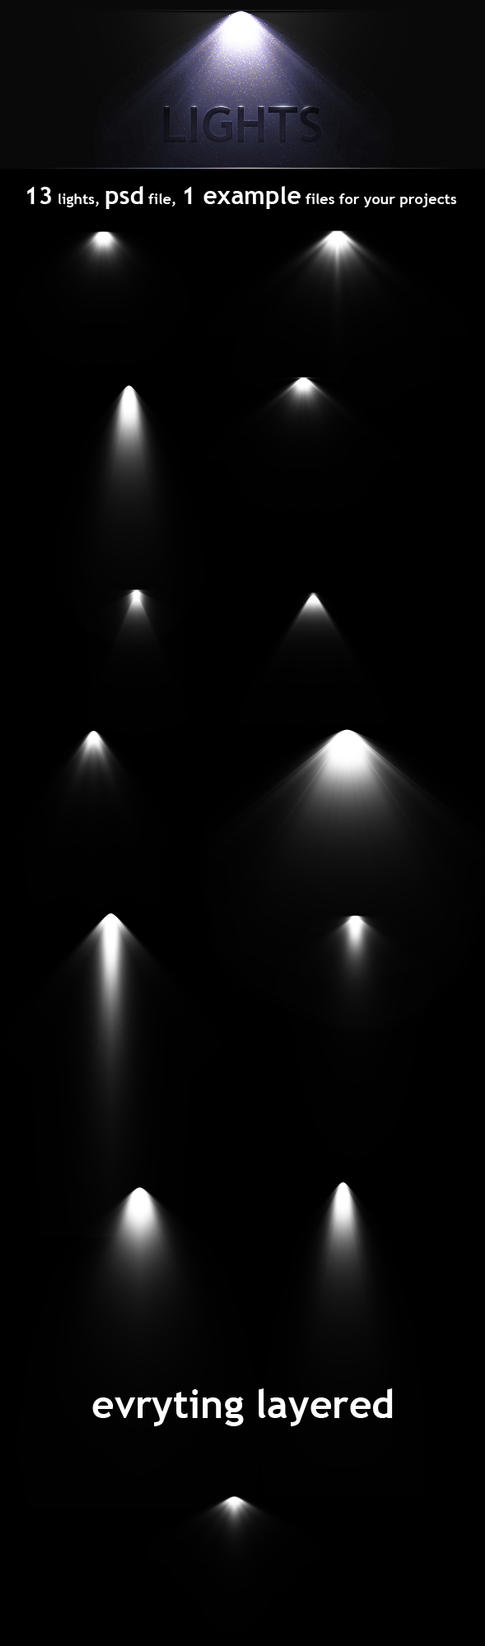 Rejected Lights by minimamente